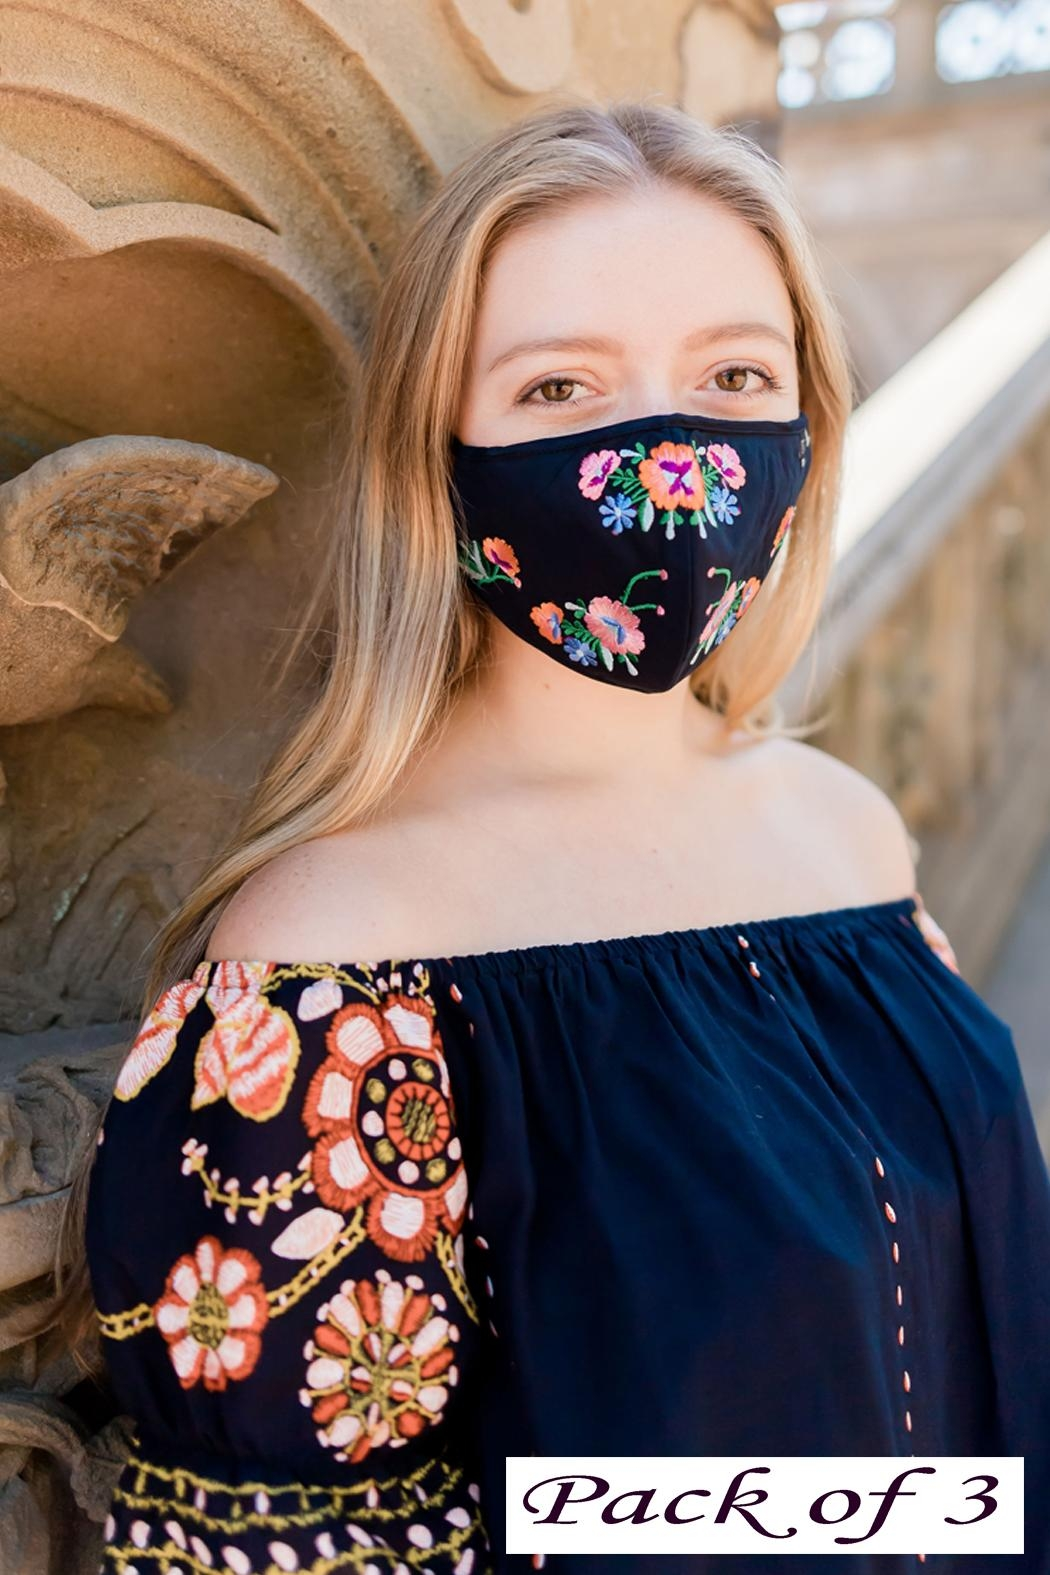 Young Threads Floral Embroidered Mask, 3layered, Adjustable Ear Loops- Pack Of 3 - Main Image